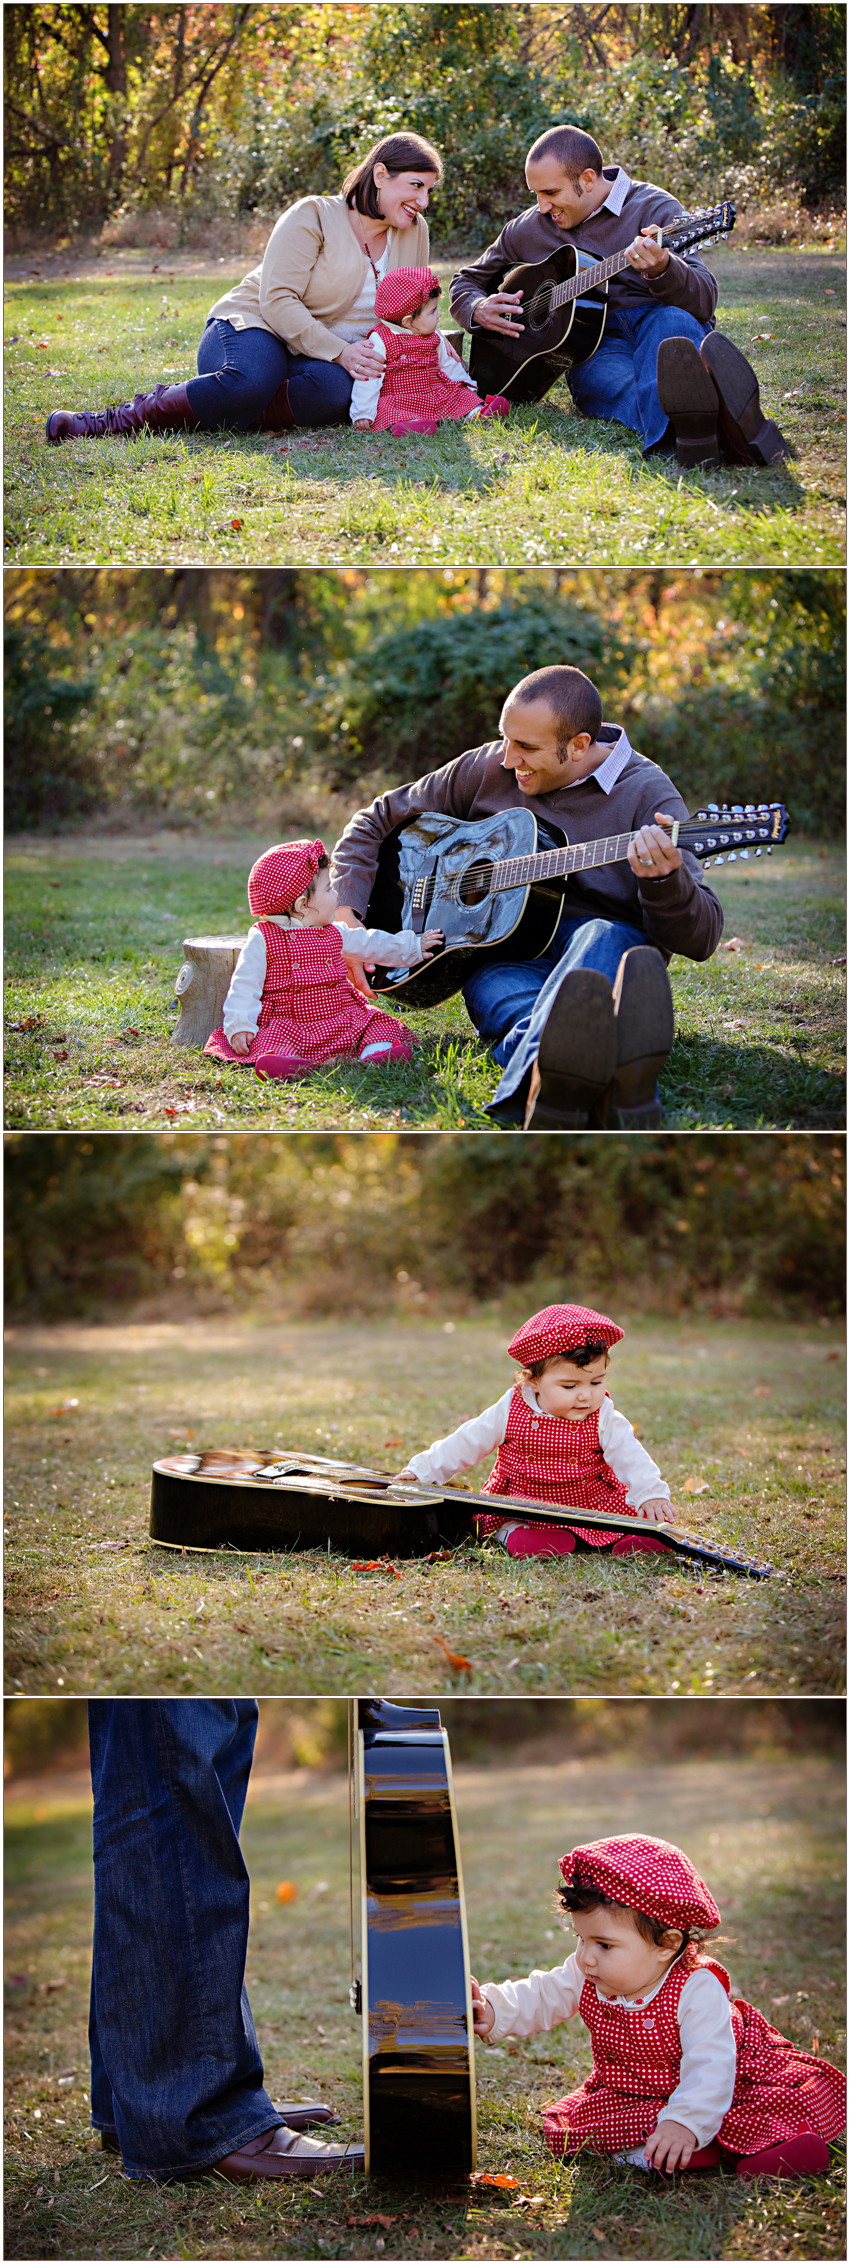 Charlotte NC Family Photographer Carolyn Ann Ryan shares family portraits